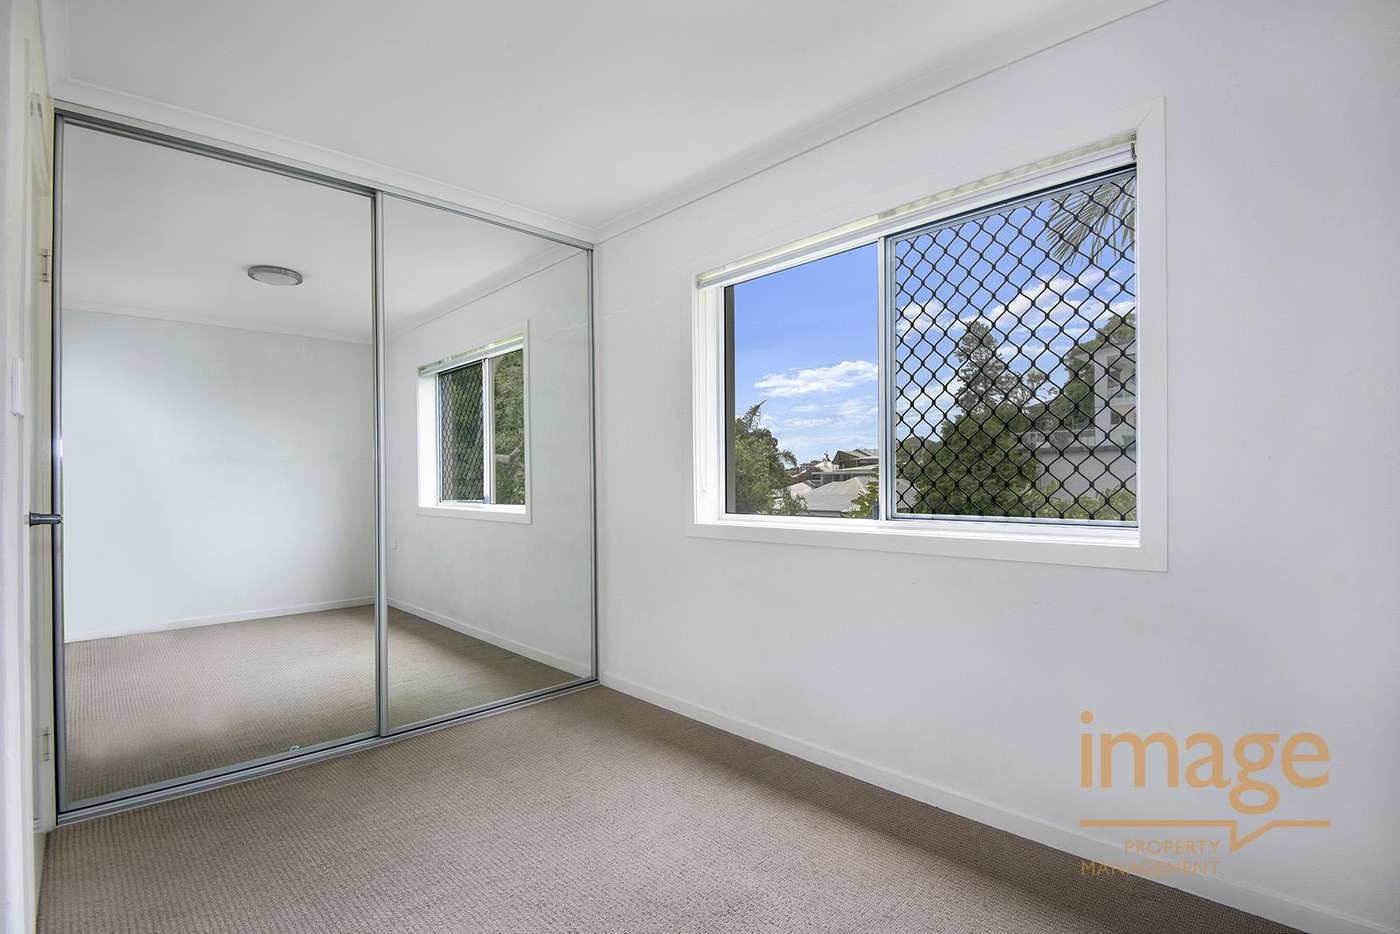 Sixth view of Homely unit listing, 8/42 Toorak Road, Hamilton QLD 4007